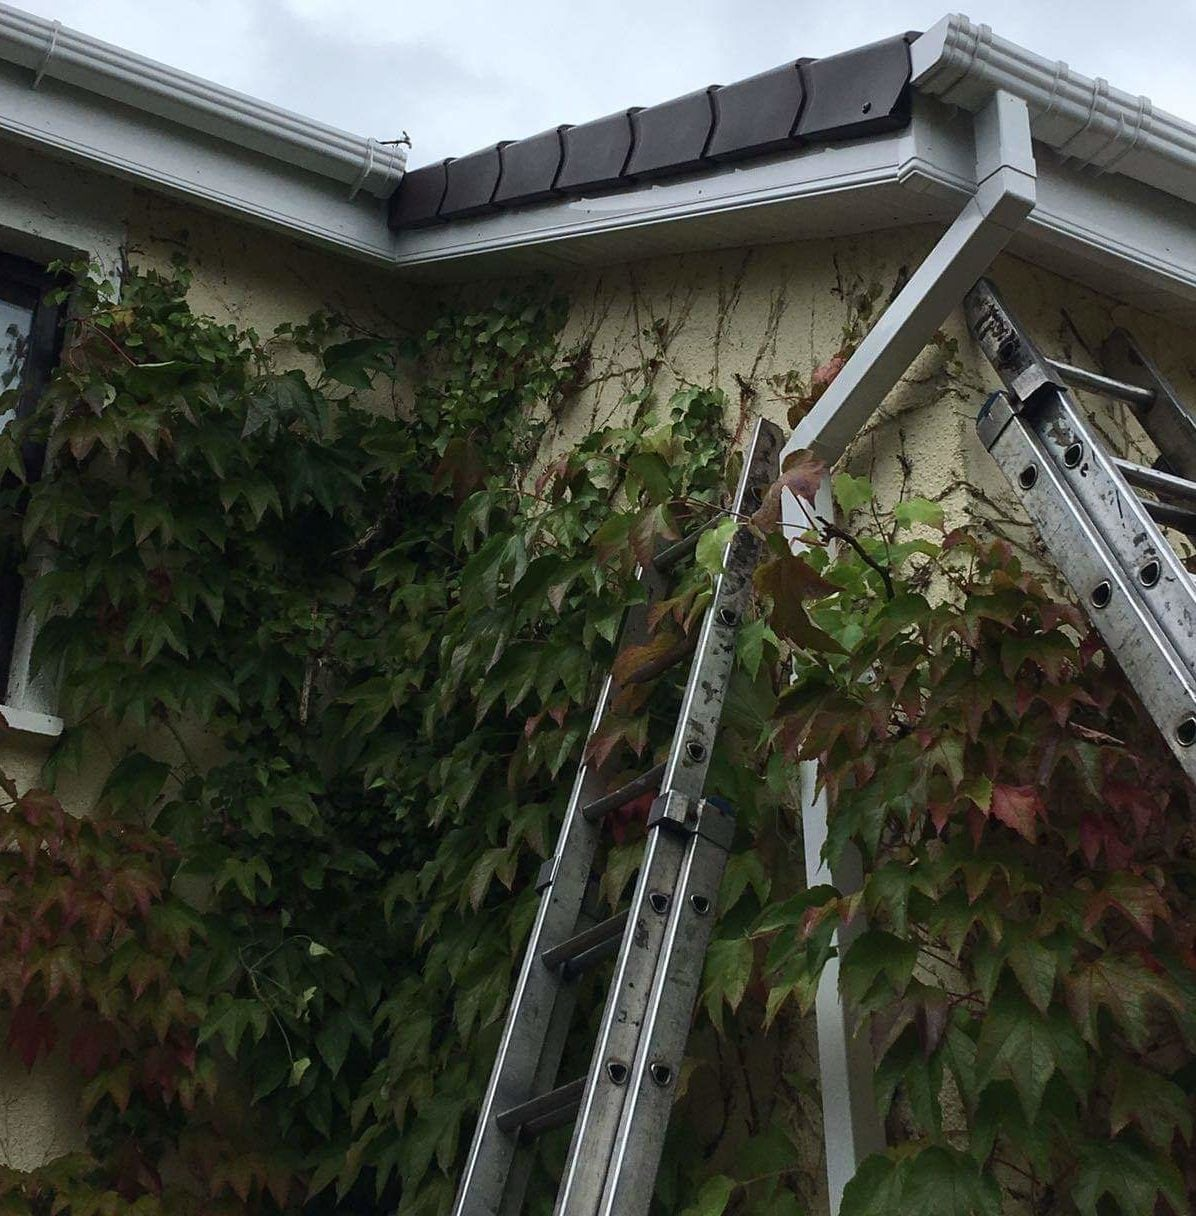 Gutters-and-Downpipe repGutters-and-Downpipe repGutters-and-Downpipes